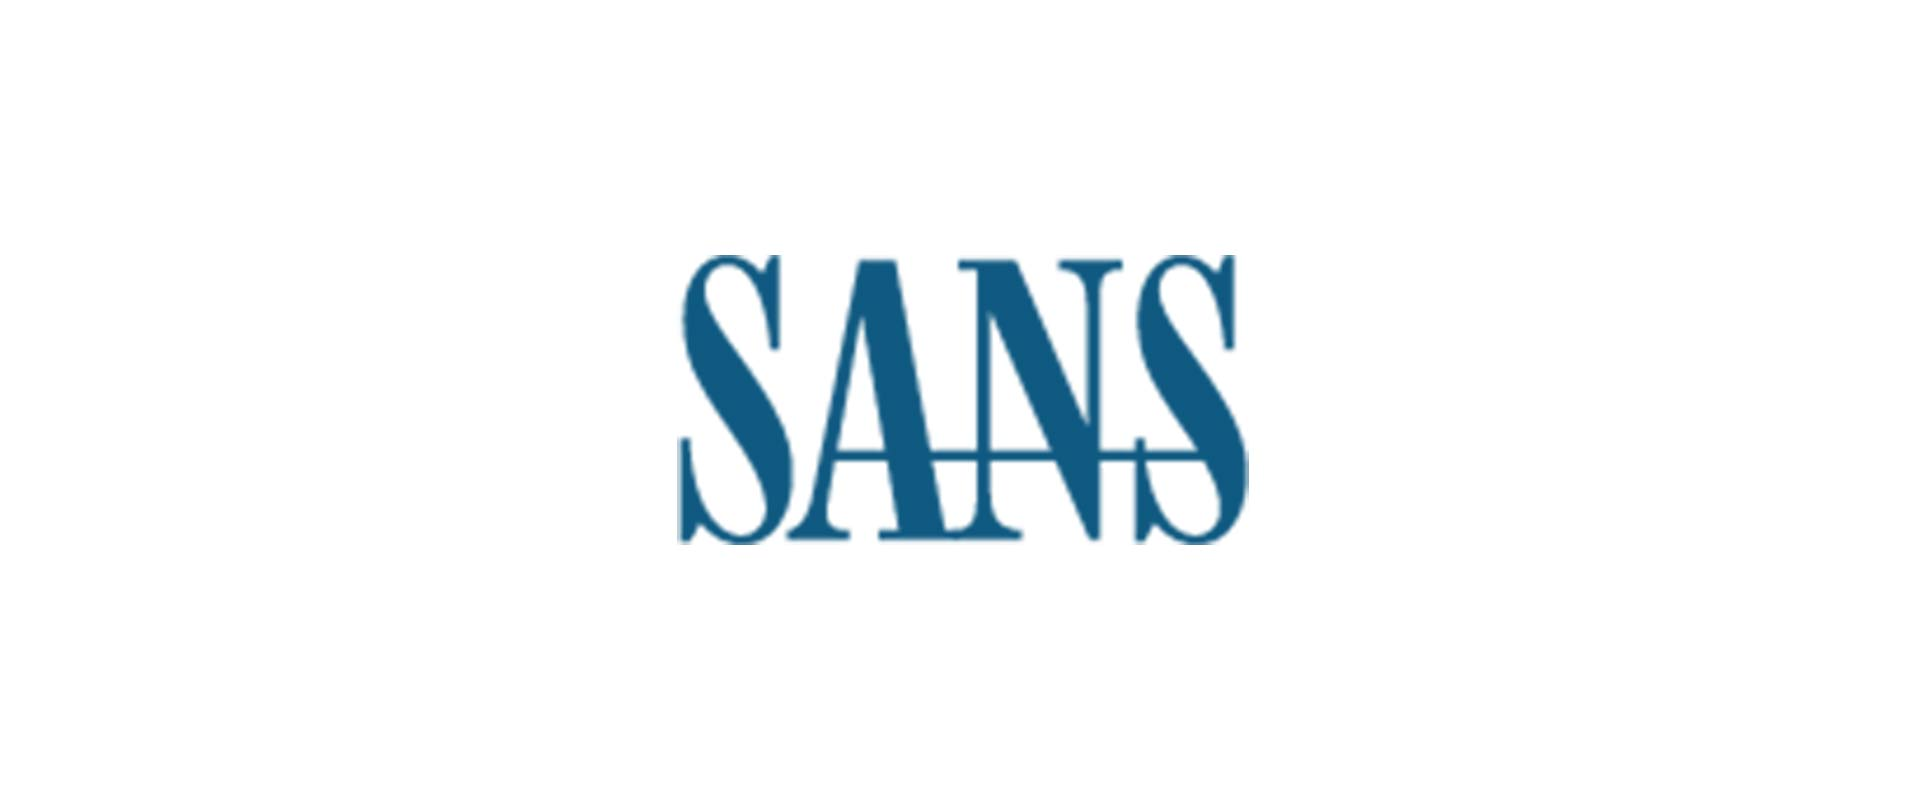 The SANS Institute Cybersecurity Newsletter